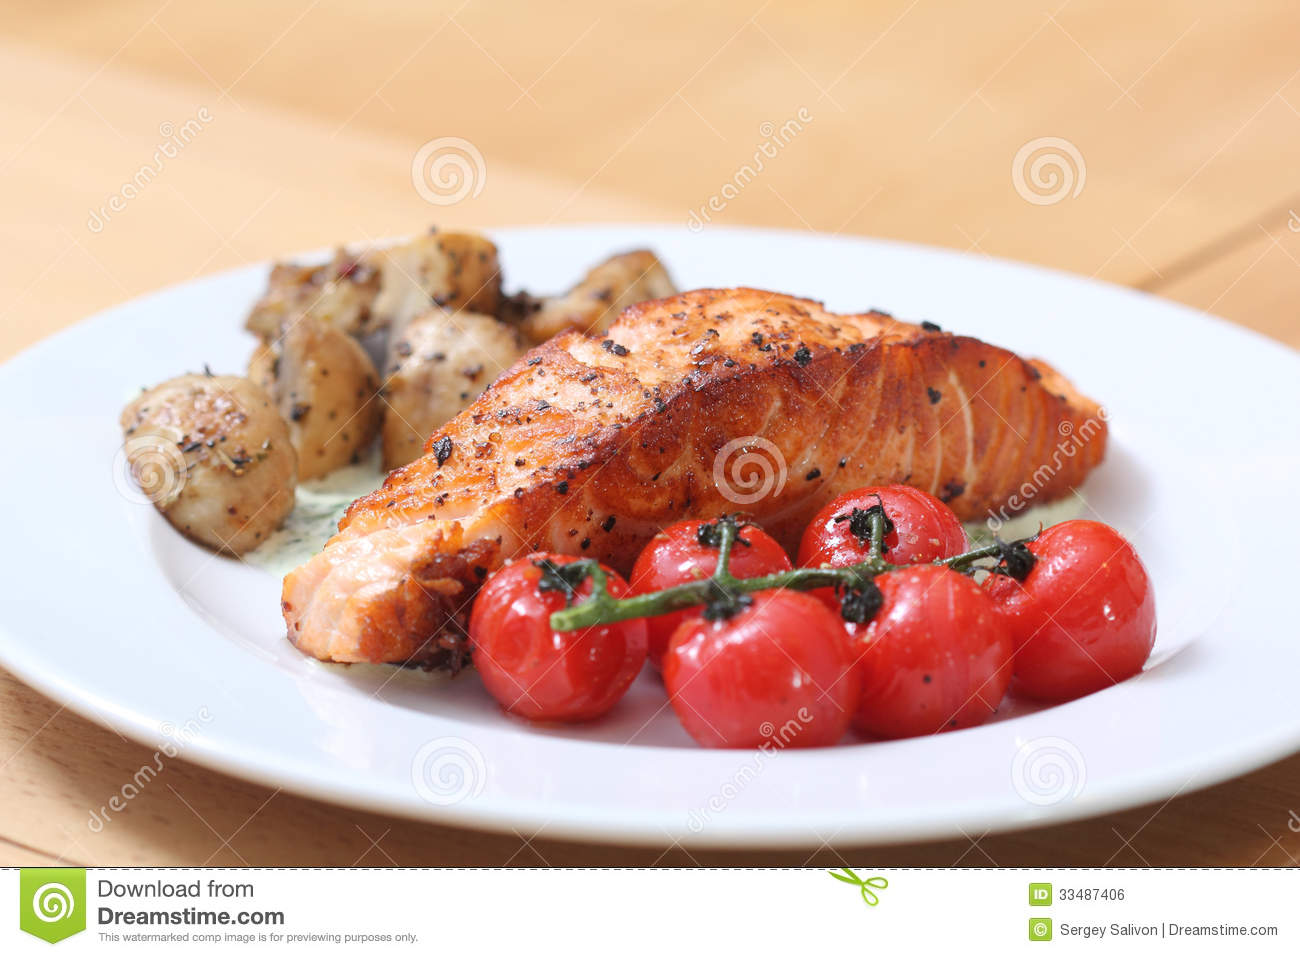 Grilled Fish Steak On The Plate Royalty Free Stock Image - Image ...